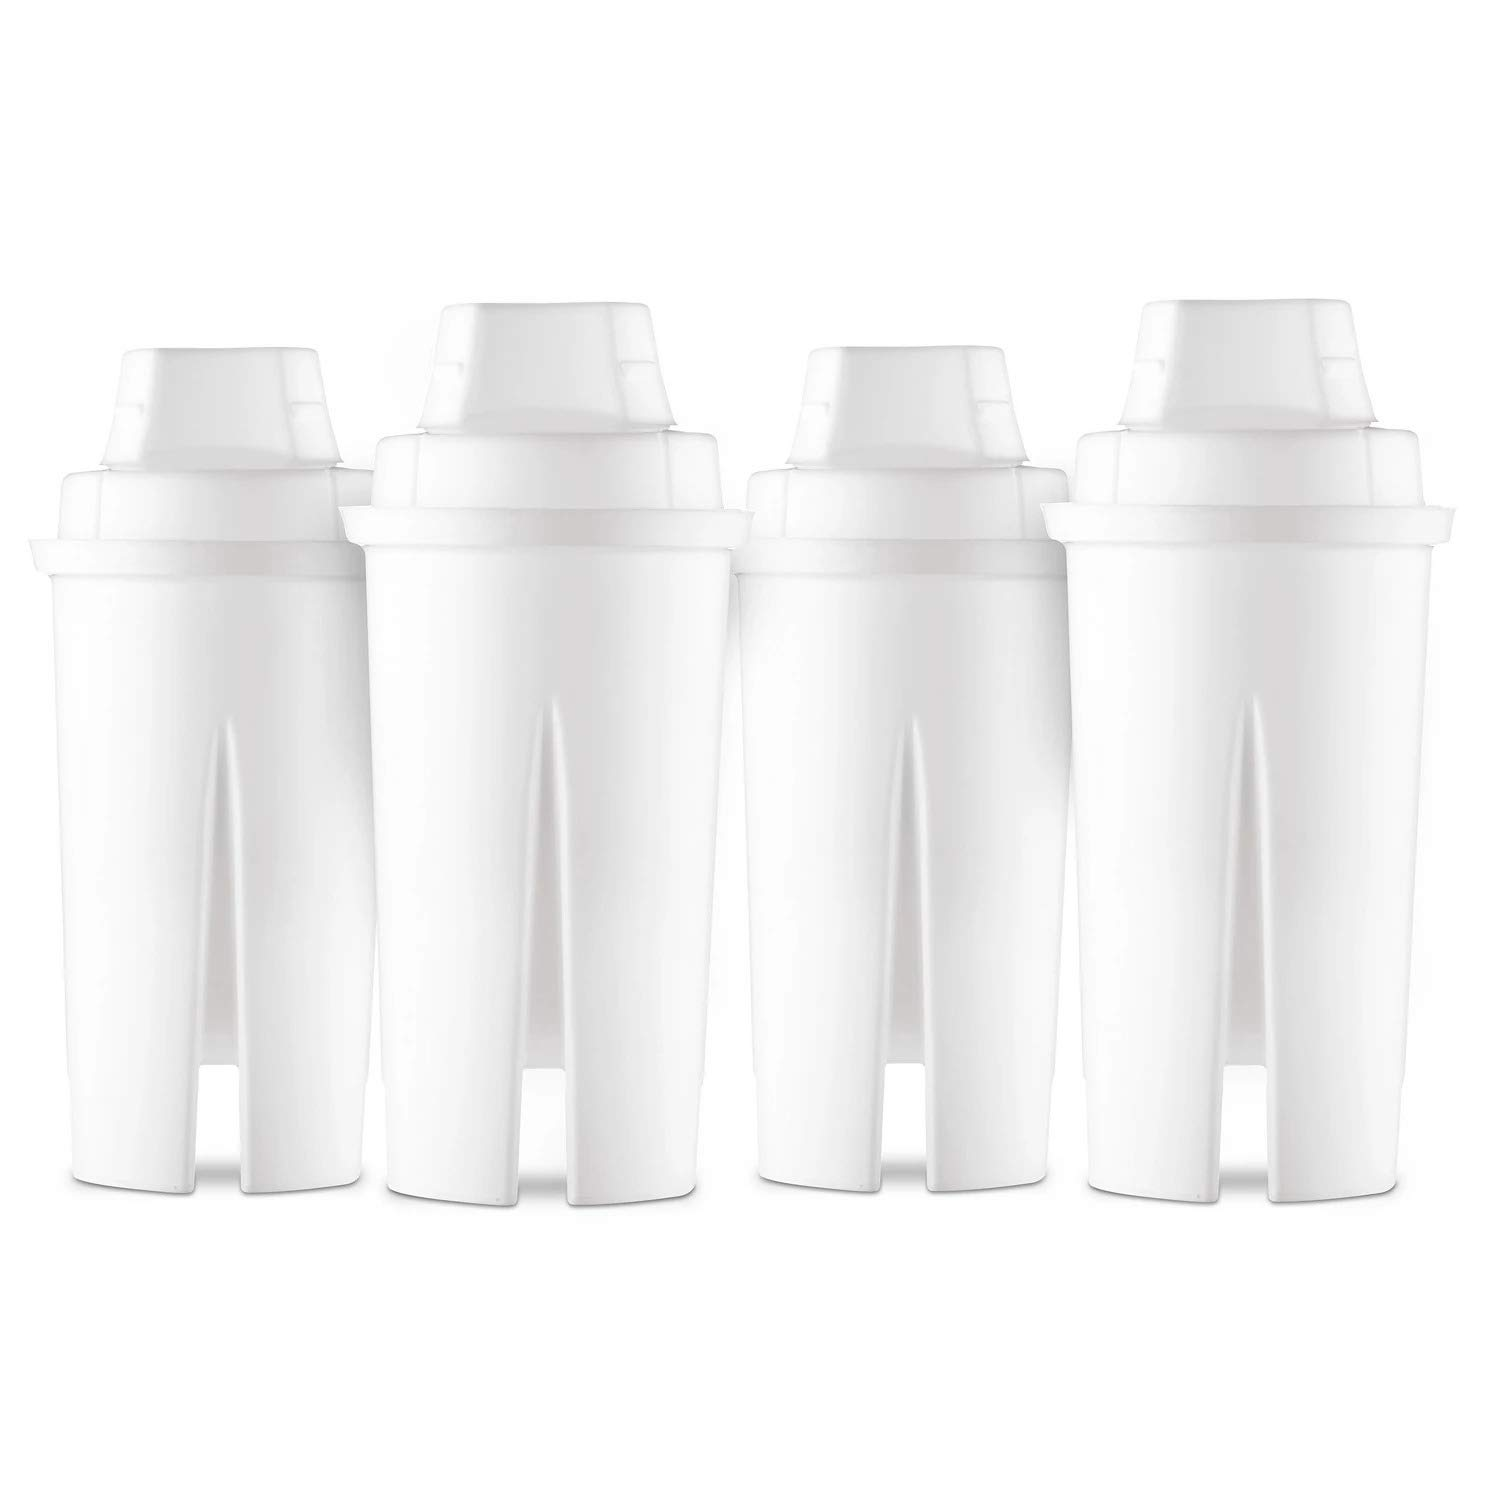 Up&Up Universal Replacement Water Filters, 4 Pack. Fits All Pur and Brita Pitchers (Except Stream).